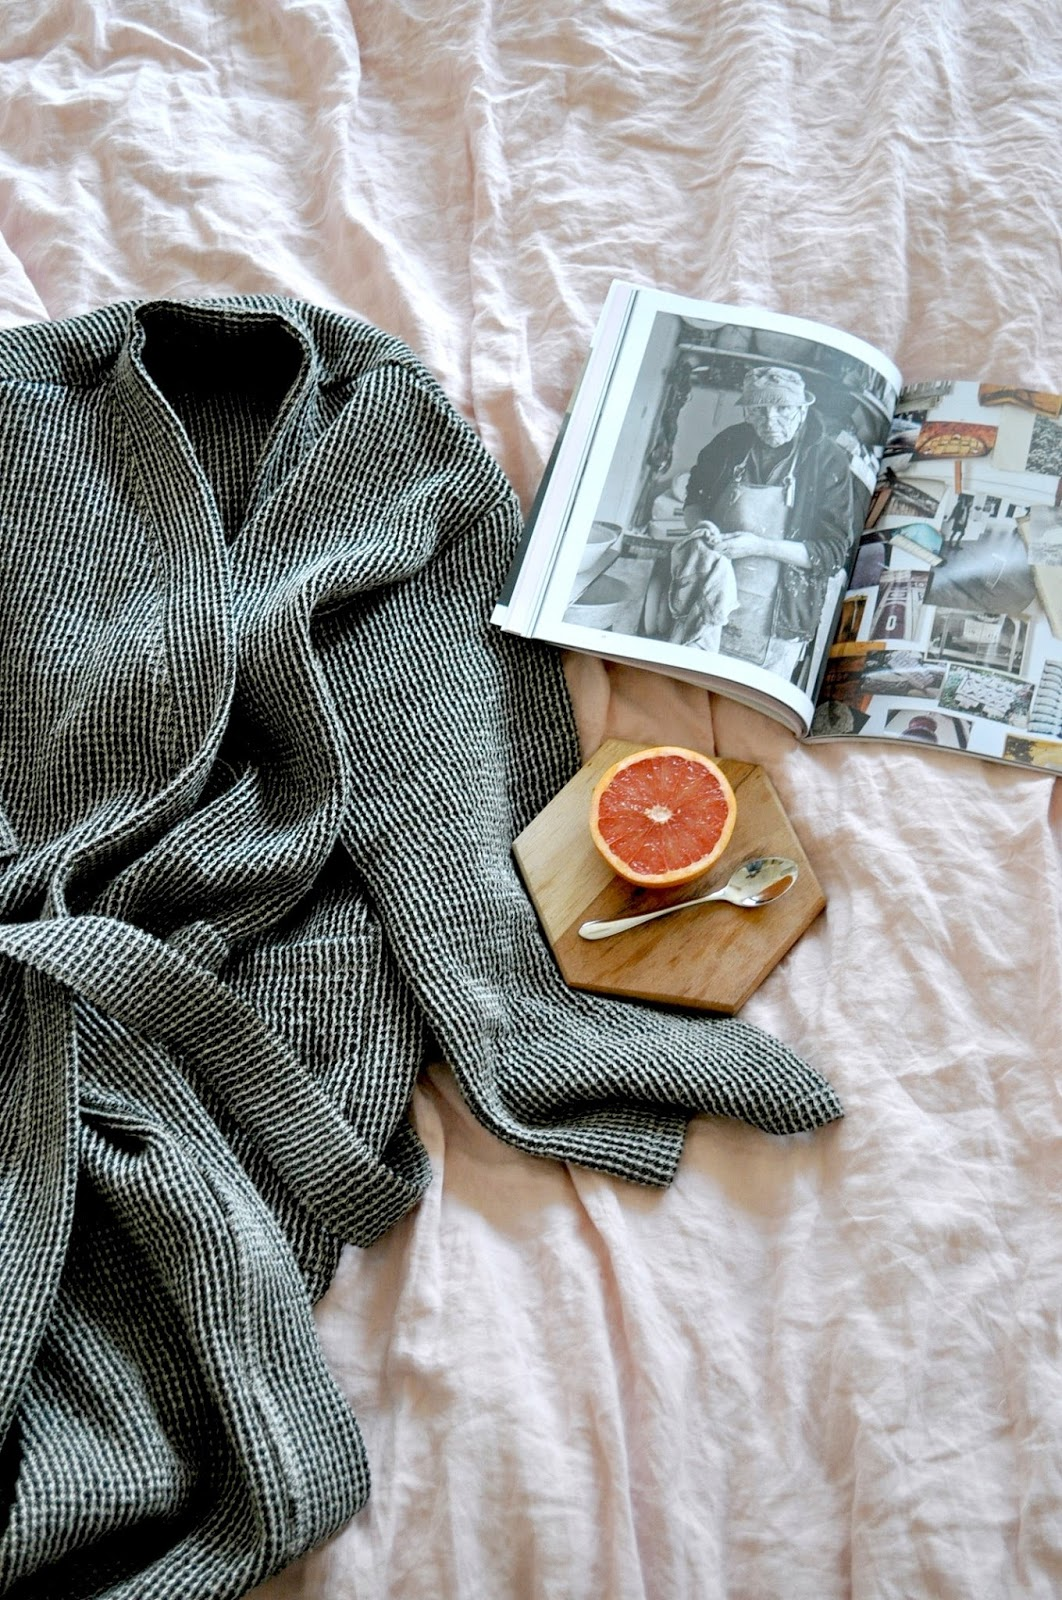 Stylish design from hotel to home bathrobe